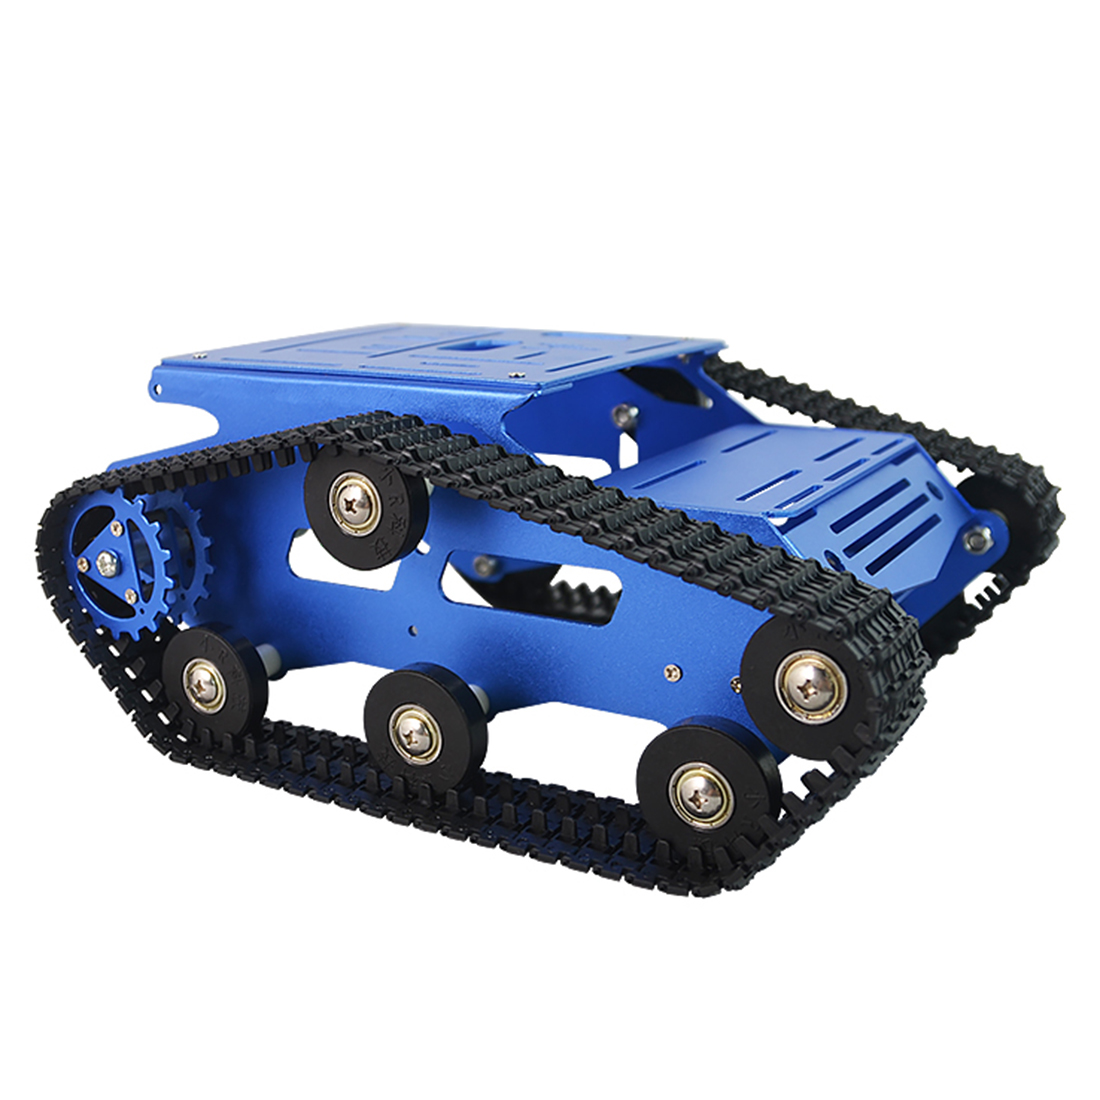 High Quality DIY Intelligent Programmable Robot Tank Crawler Chassis Car Frame Kit Gift For Children Adults - Blue